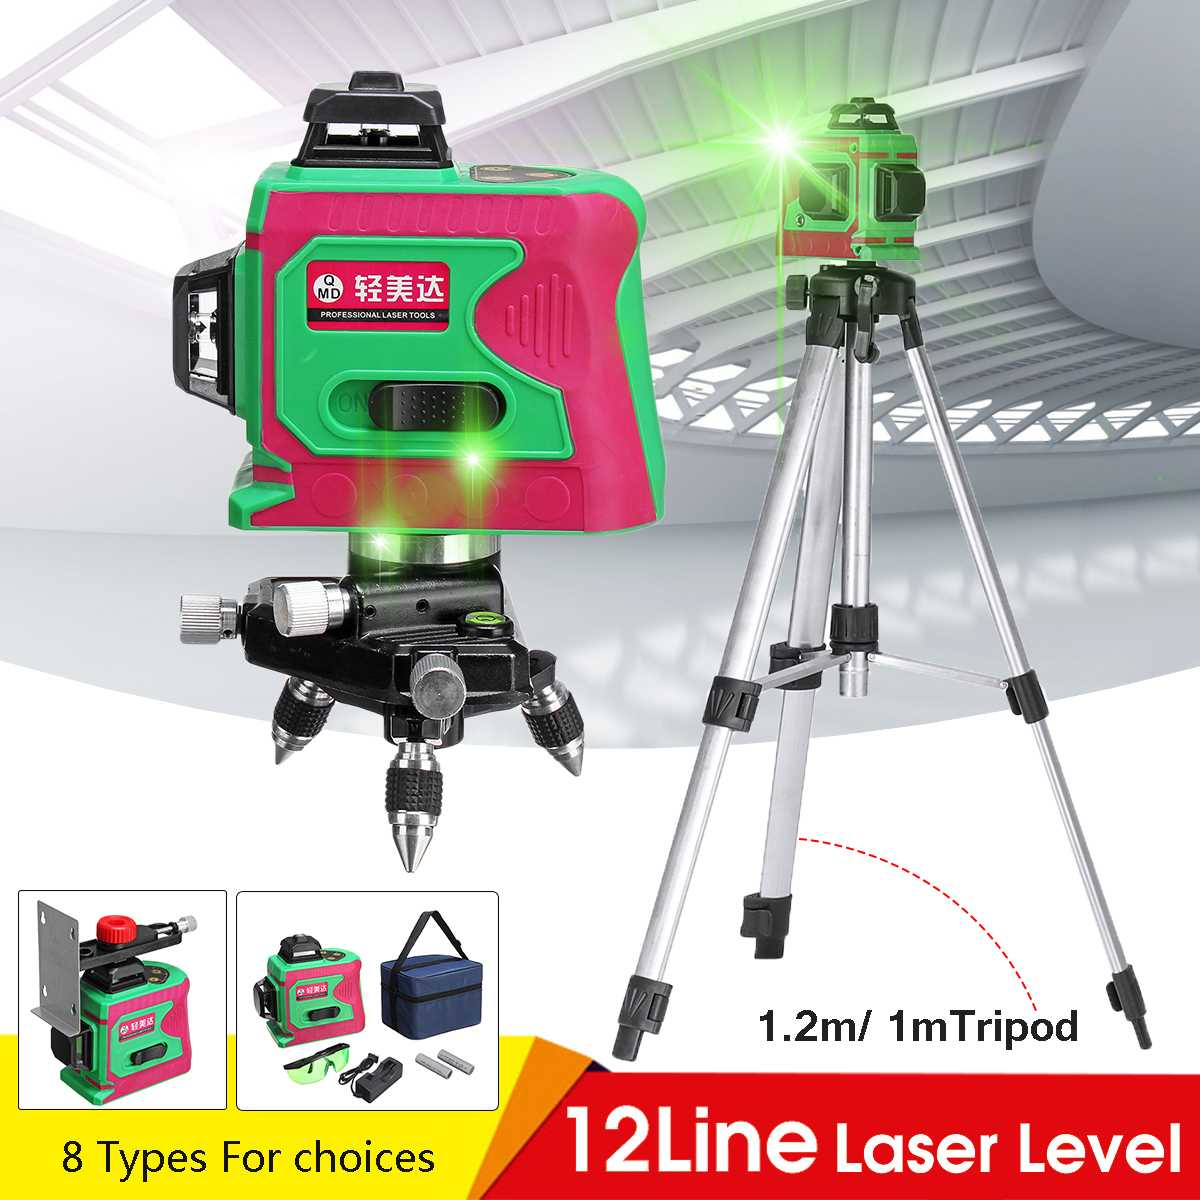 3D 12 Line Green Light Laser Level Auto Self Leveling 360 Rotary Measure Cross With Wall Mounted Bracket Tripod Base US Plug3D 12 Line Green Light Laser Level Auto Self Leveling 360 Rotary Measure Cross With Wall Mounted Bracket Tripod Base US Plug